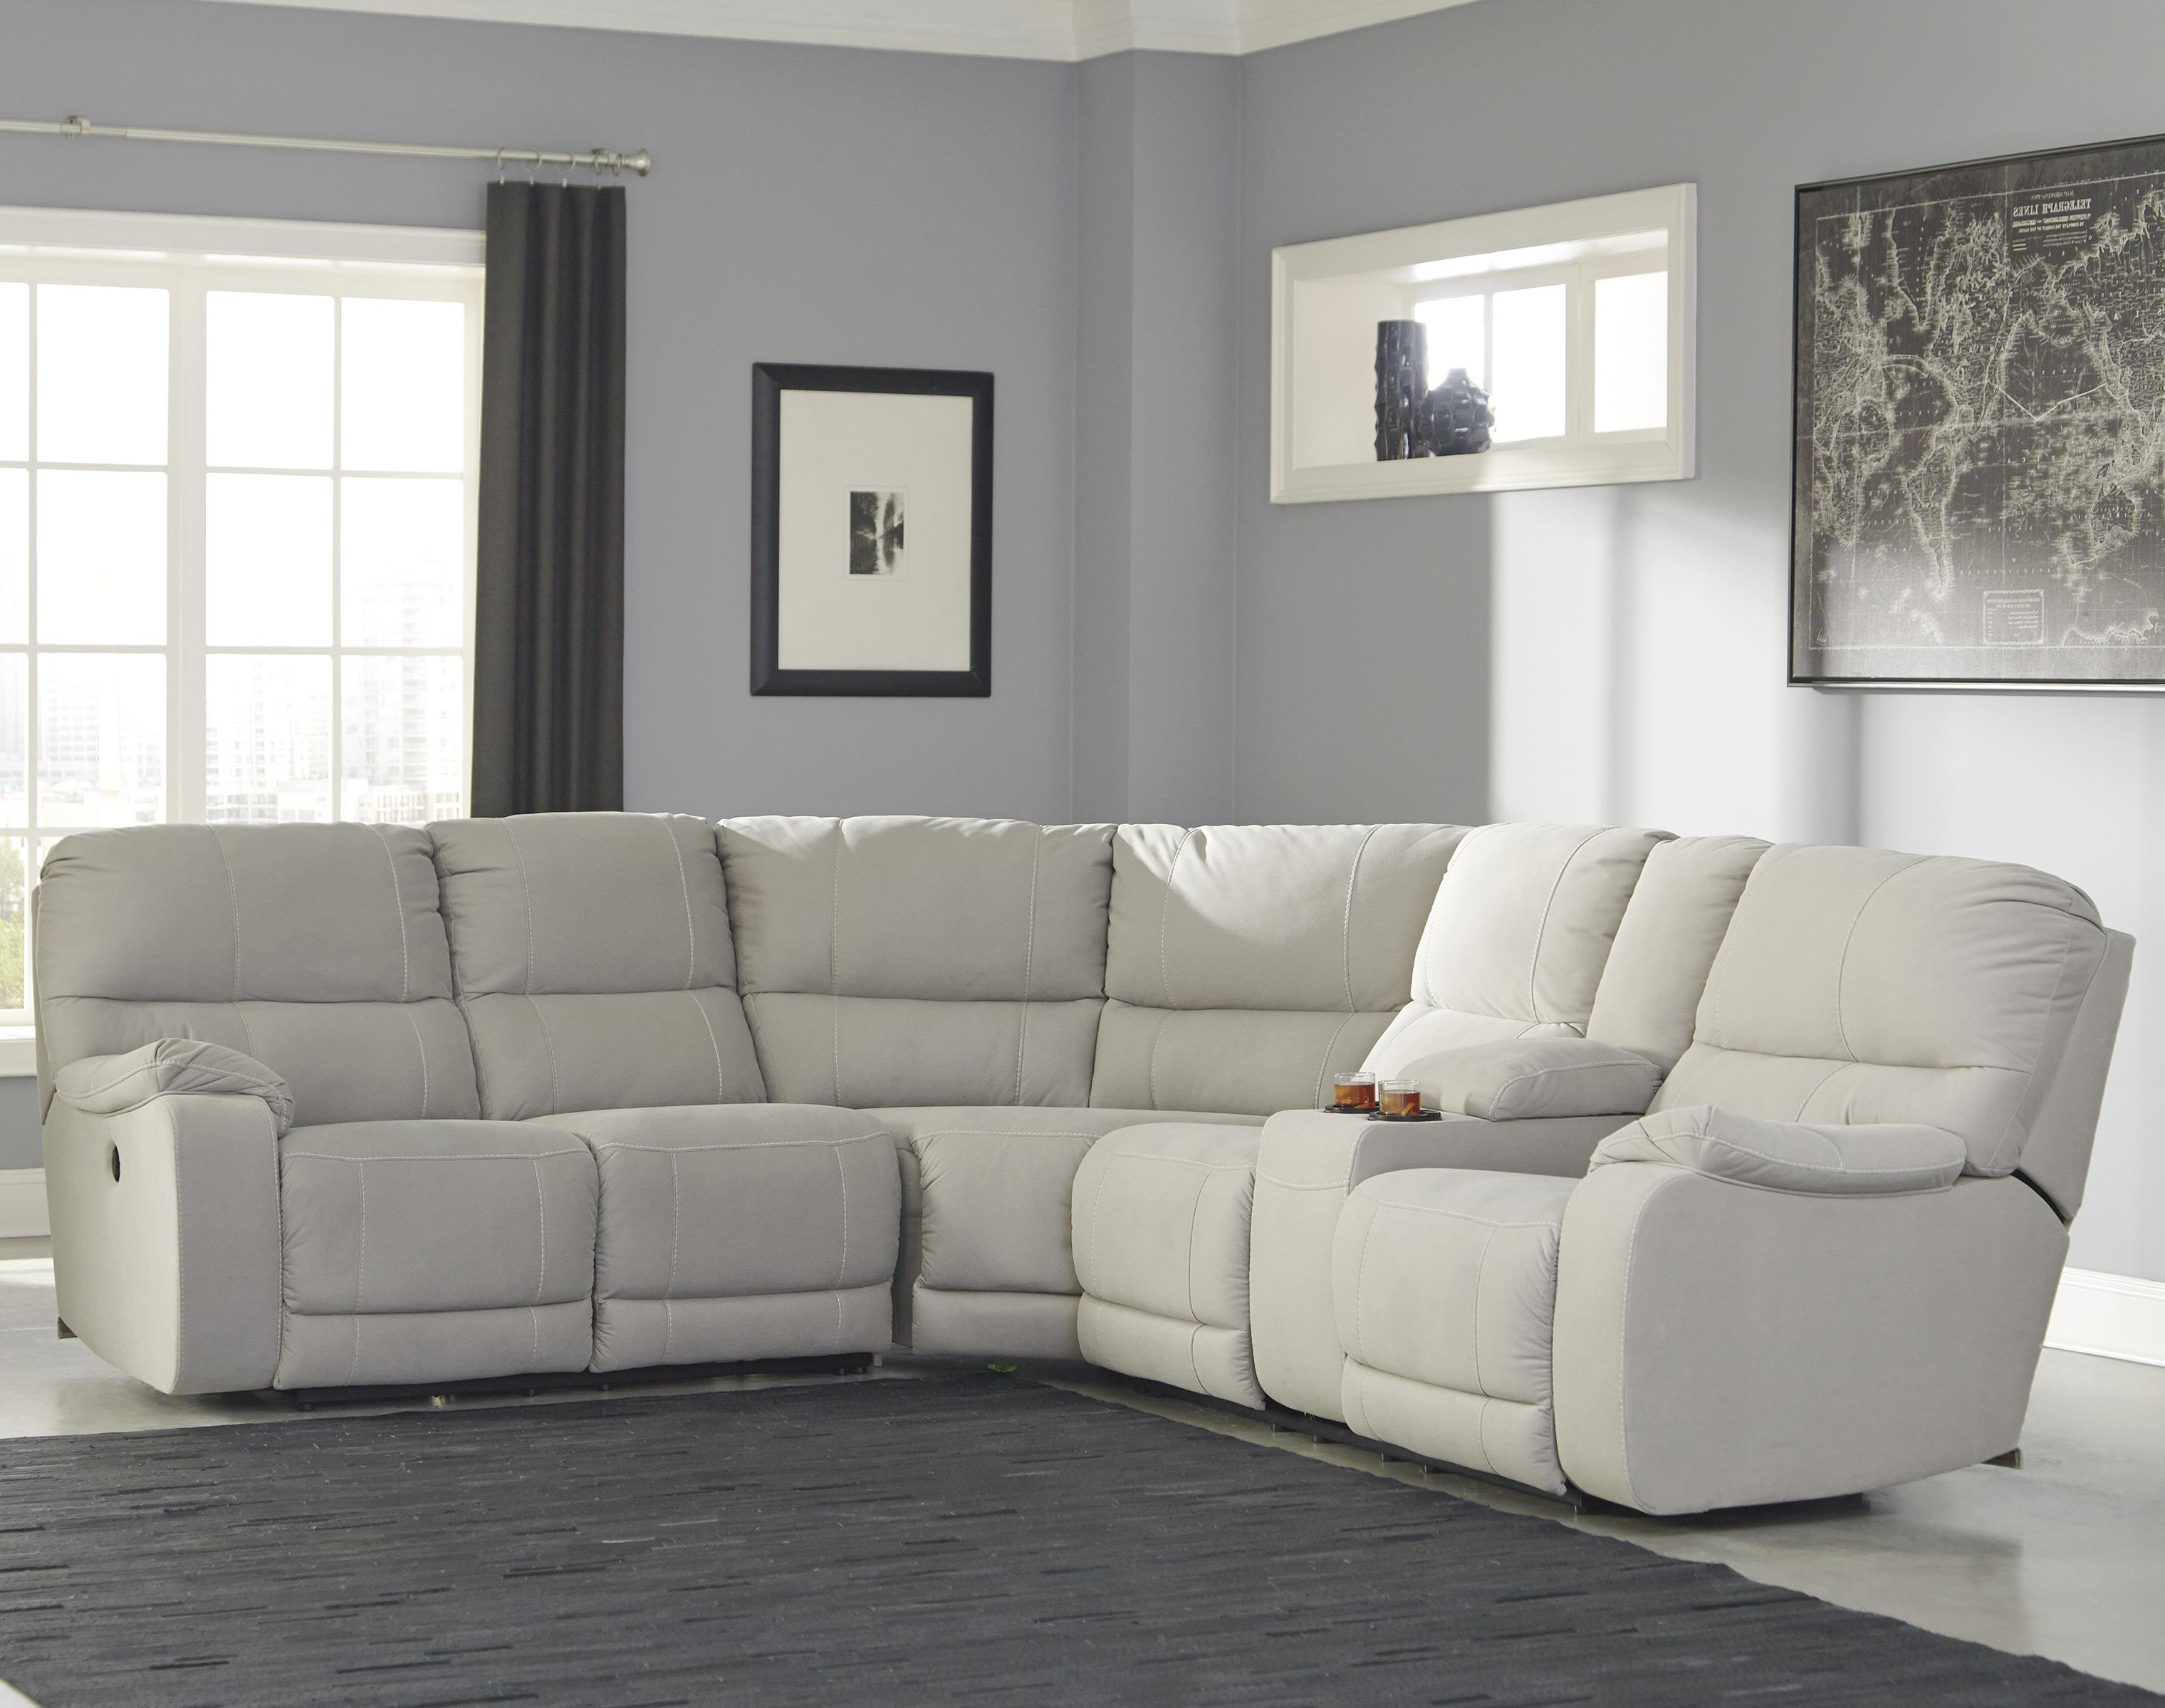 Benchcraft Bohannon Power Reclining Sectional with Console - Item Number: 5740163+77+90